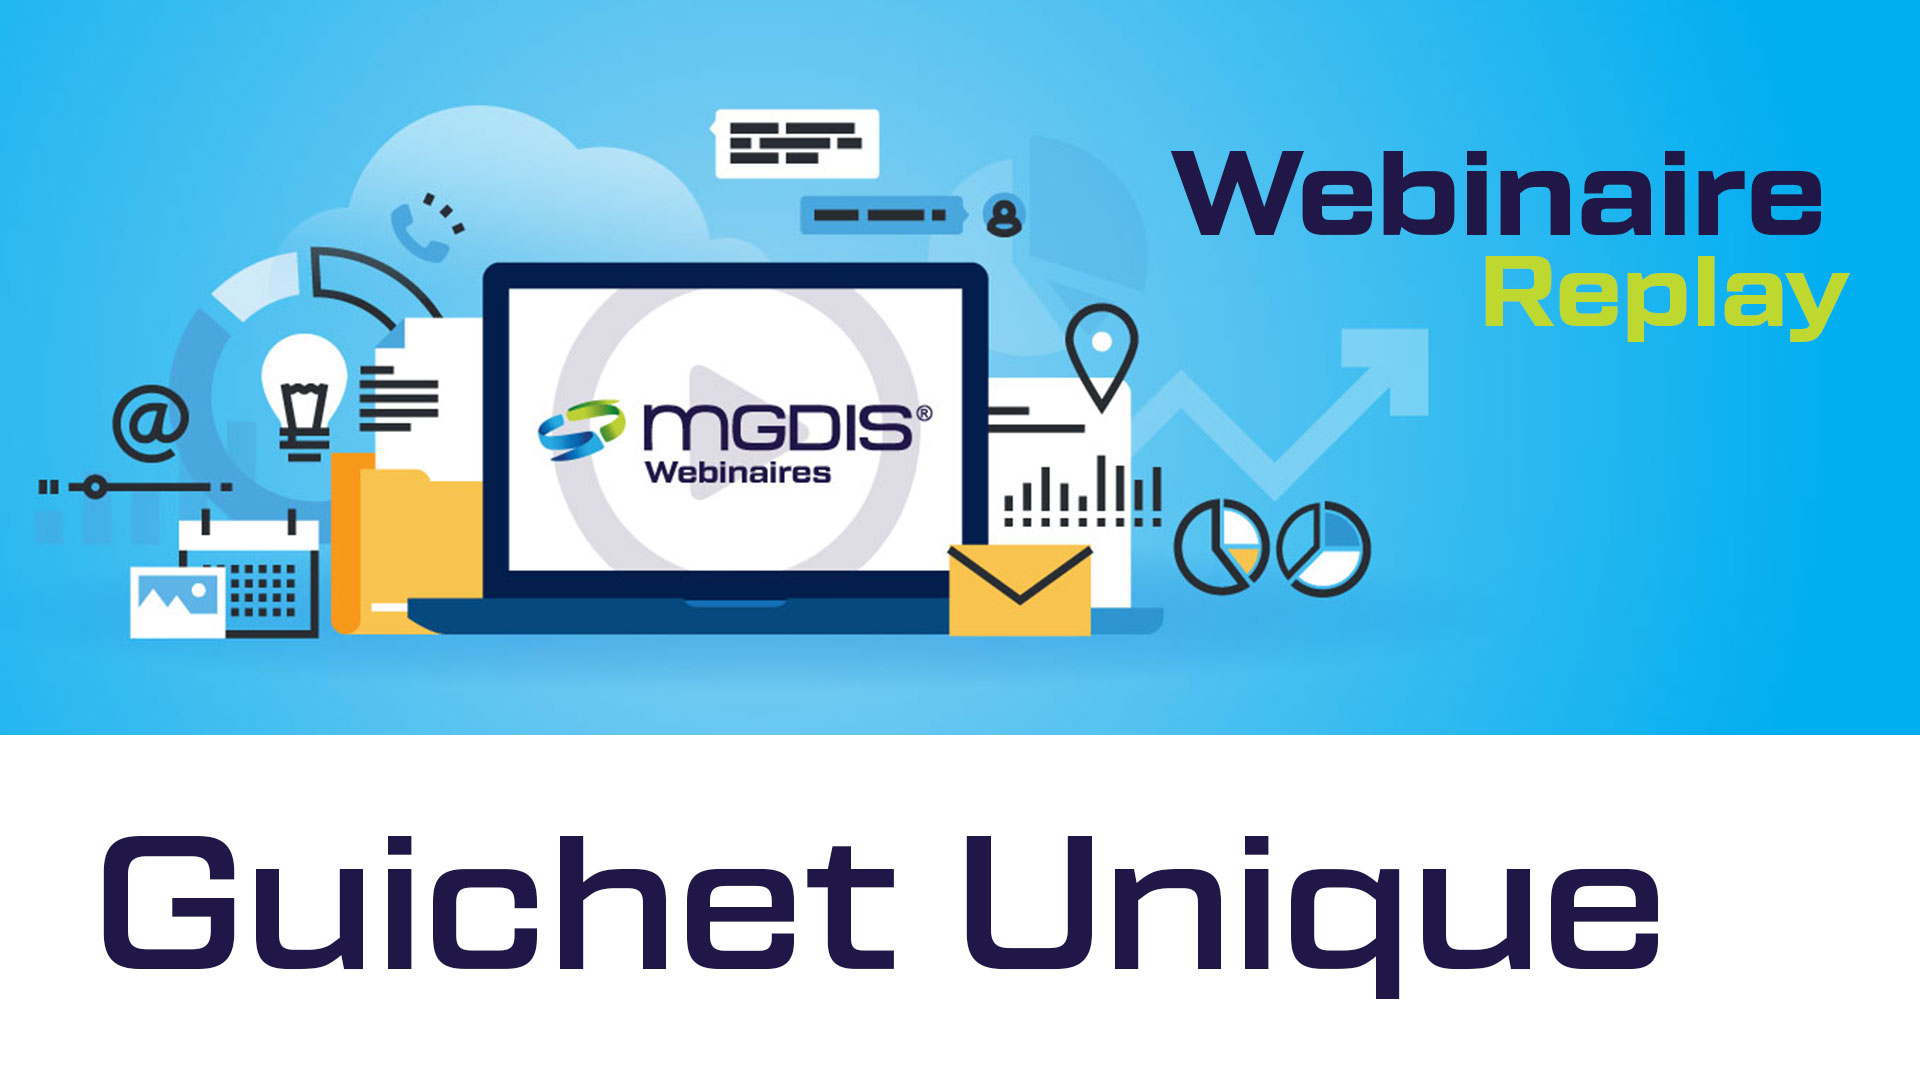 replay-webinaire-mgdis-guichet-unique